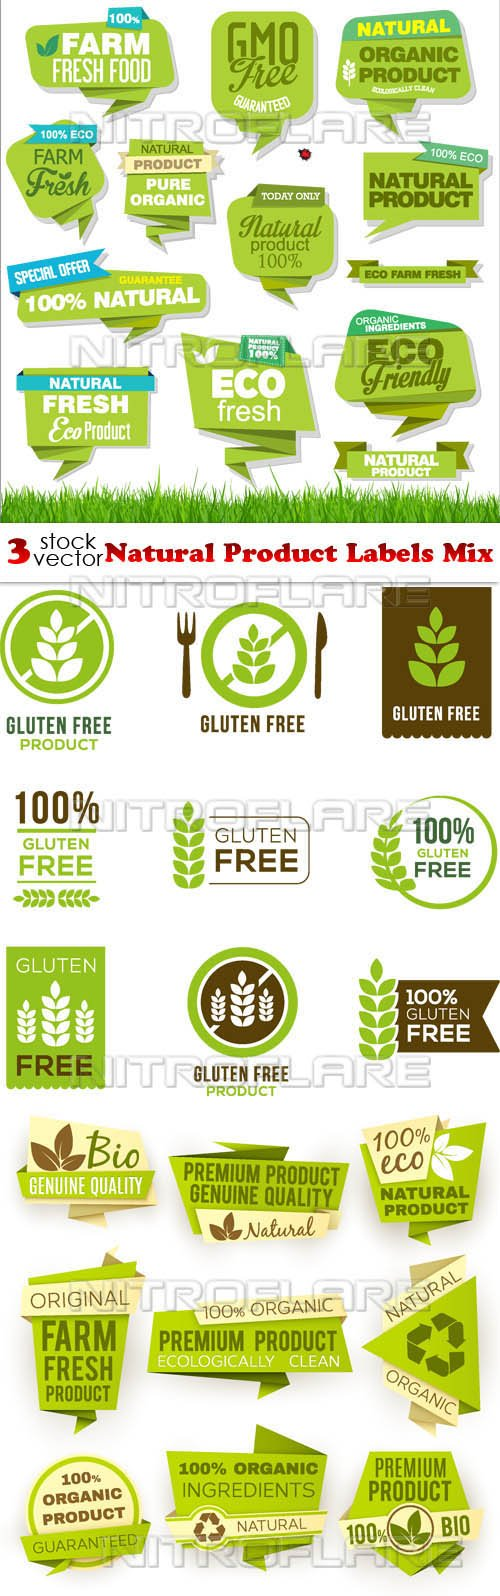 Vectors - Natural Product Labels Mix